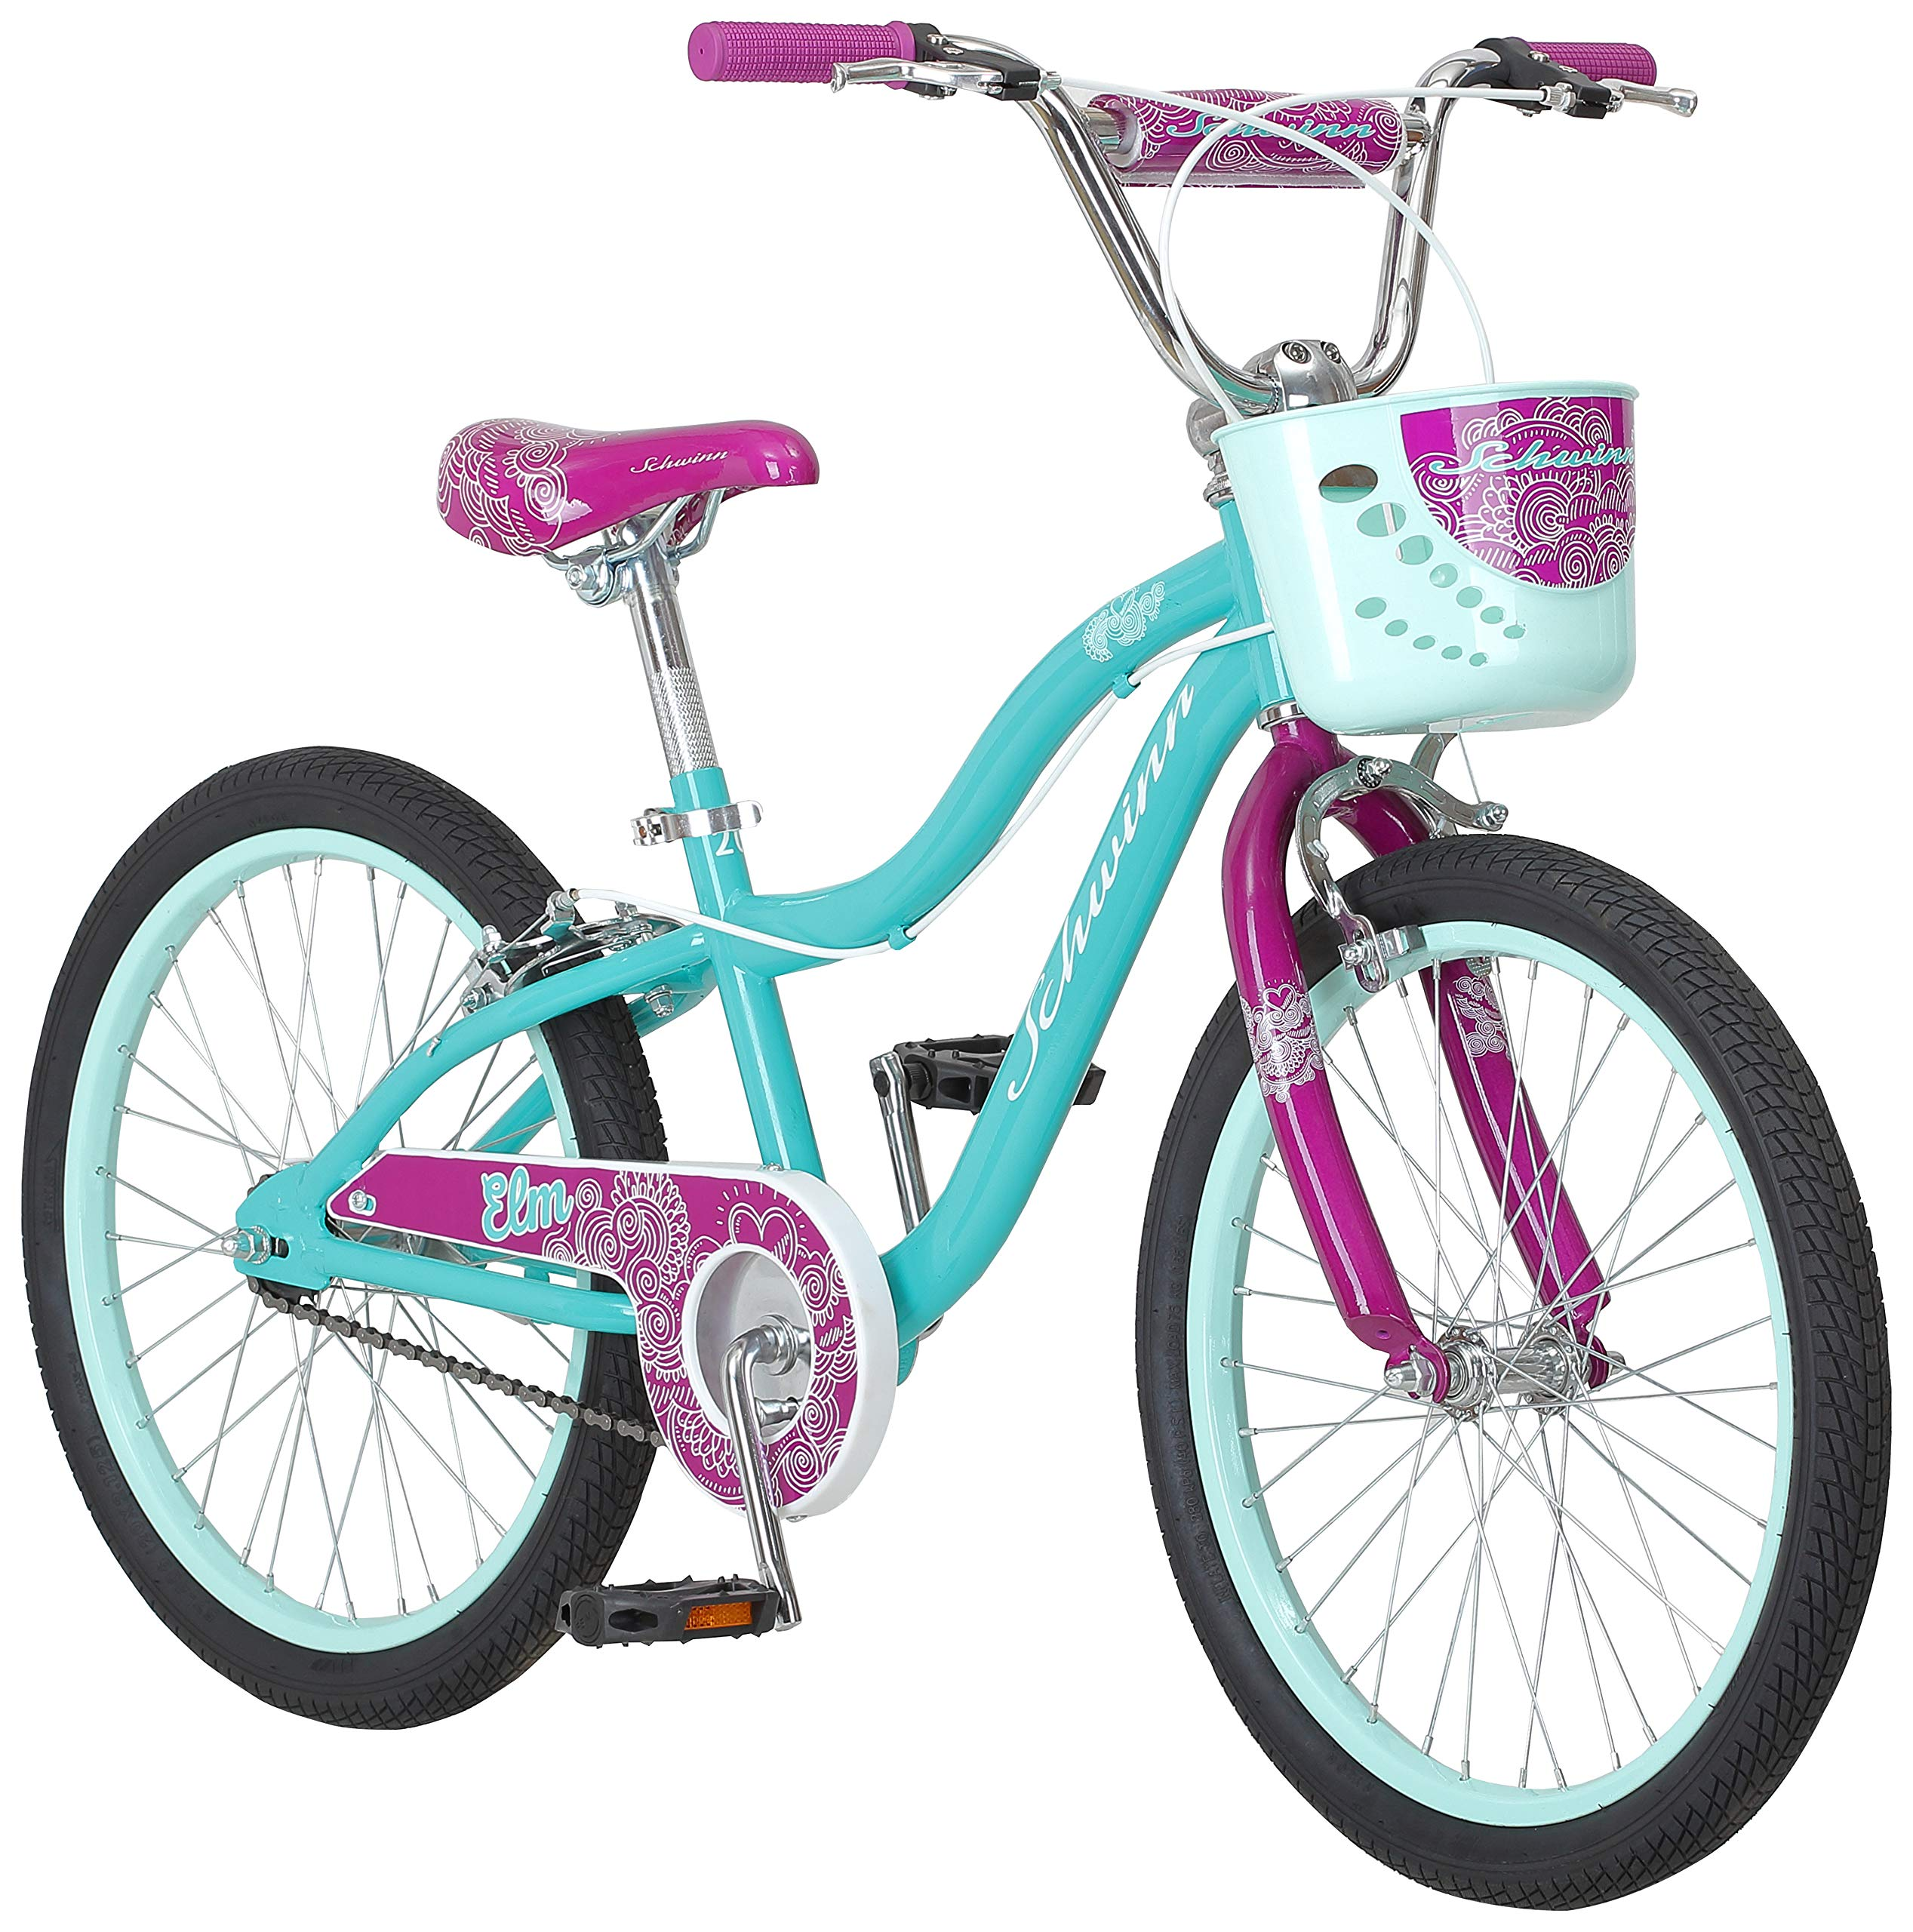 Schwinn Elm Girl's Bike with SmartStart, 20'' Wheels, Teal